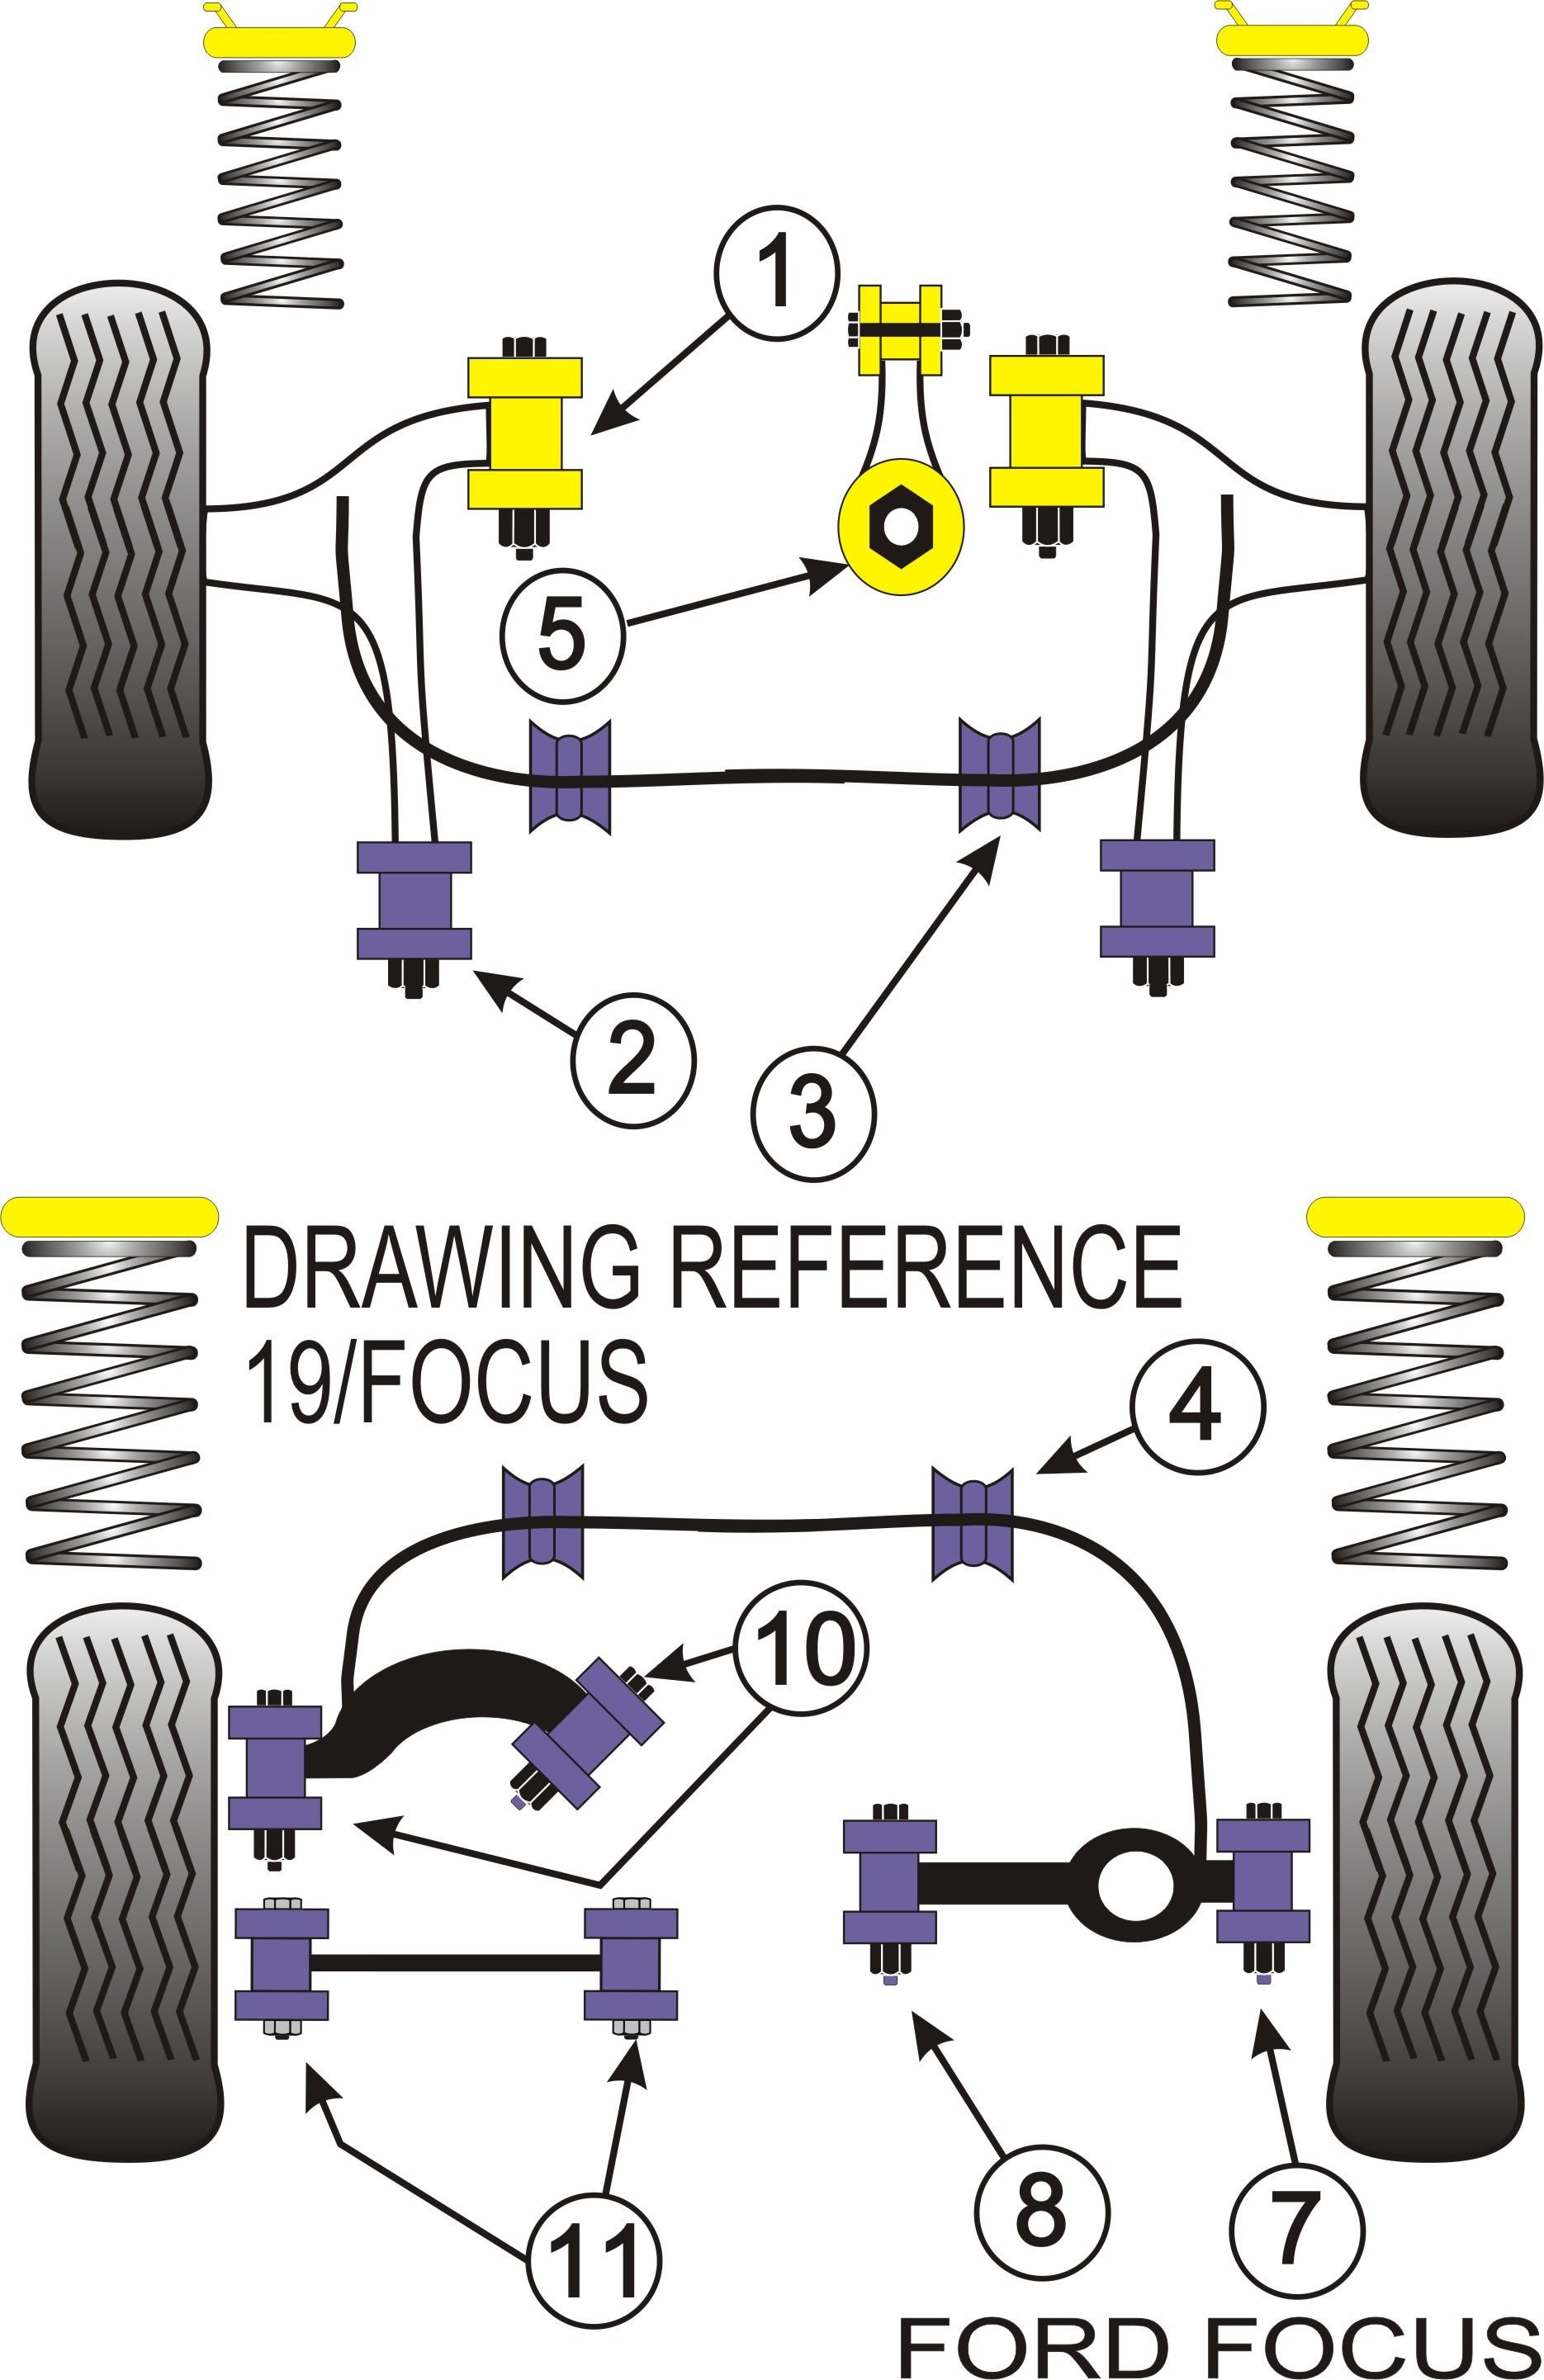 Ford Focus Engine Mount Diagram List Of Schematic Circuit 2008 Powerflex Bush Poly For Rs To 06 Front Lower Rh Motorsport Tools Com 2003 Motor